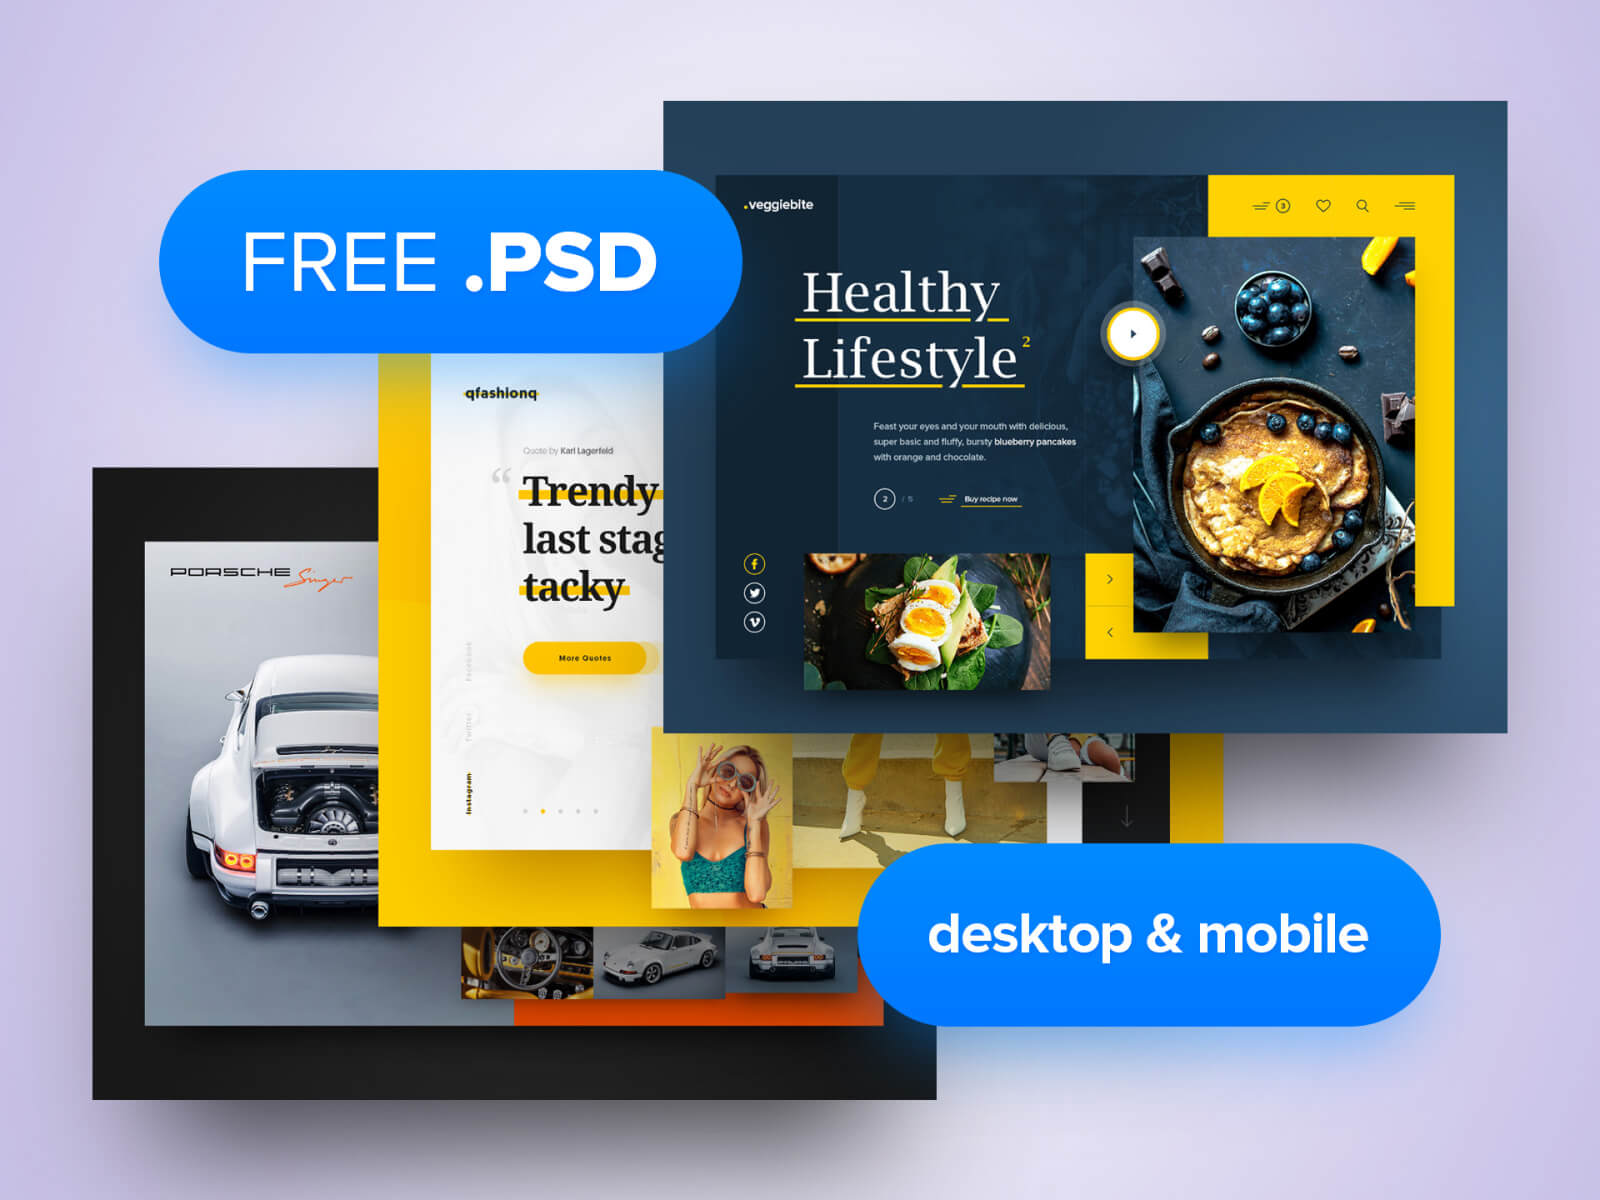 3x Free PSD cover image